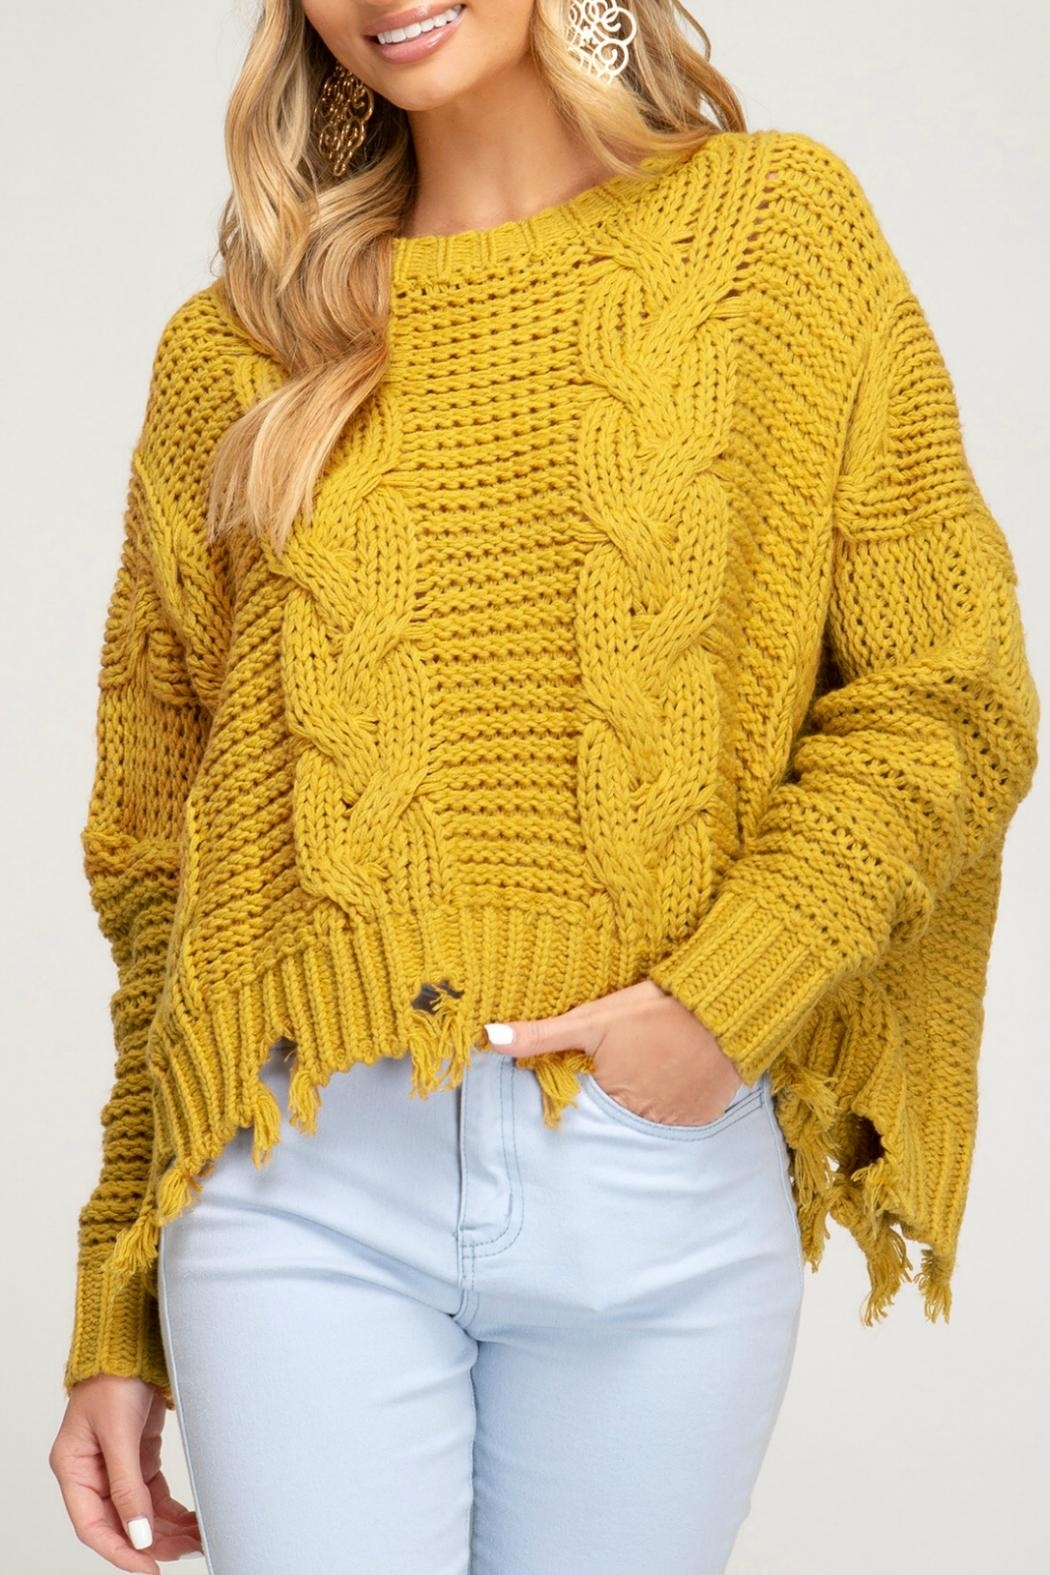 She + Sky Cableknit Distressed Sweater - Front Cropped Image